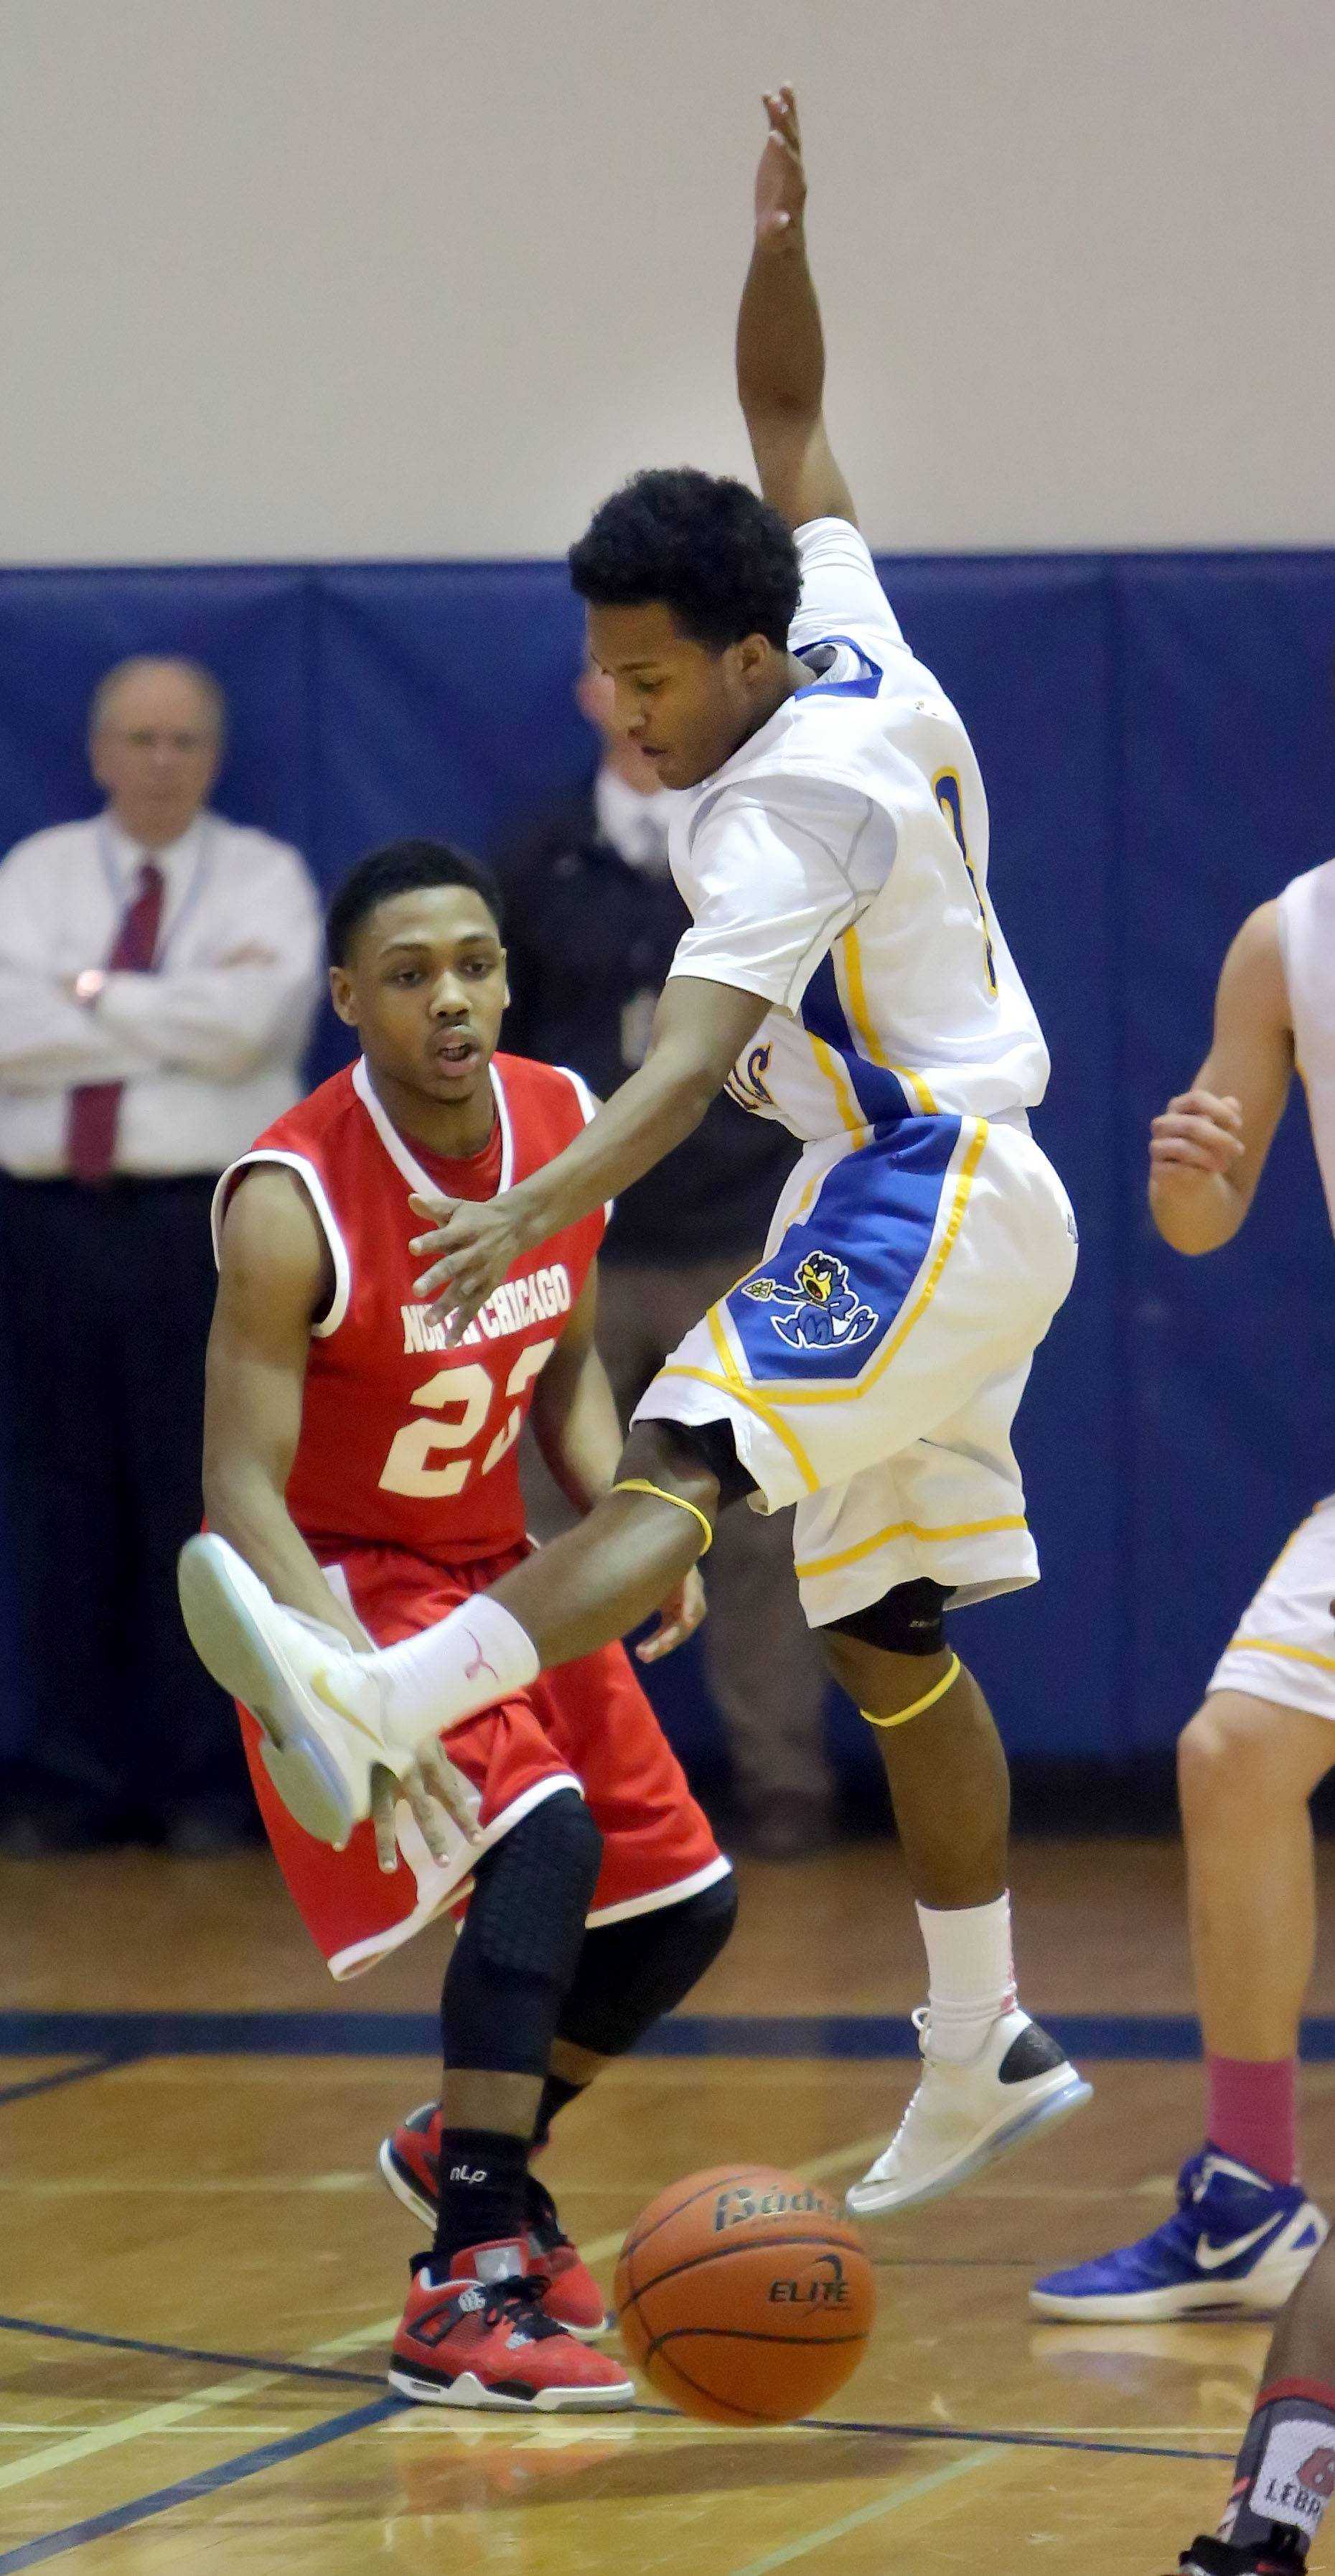 Warren's Eric Gillespie, right, defends against North Chicago's Jamero Shelton.